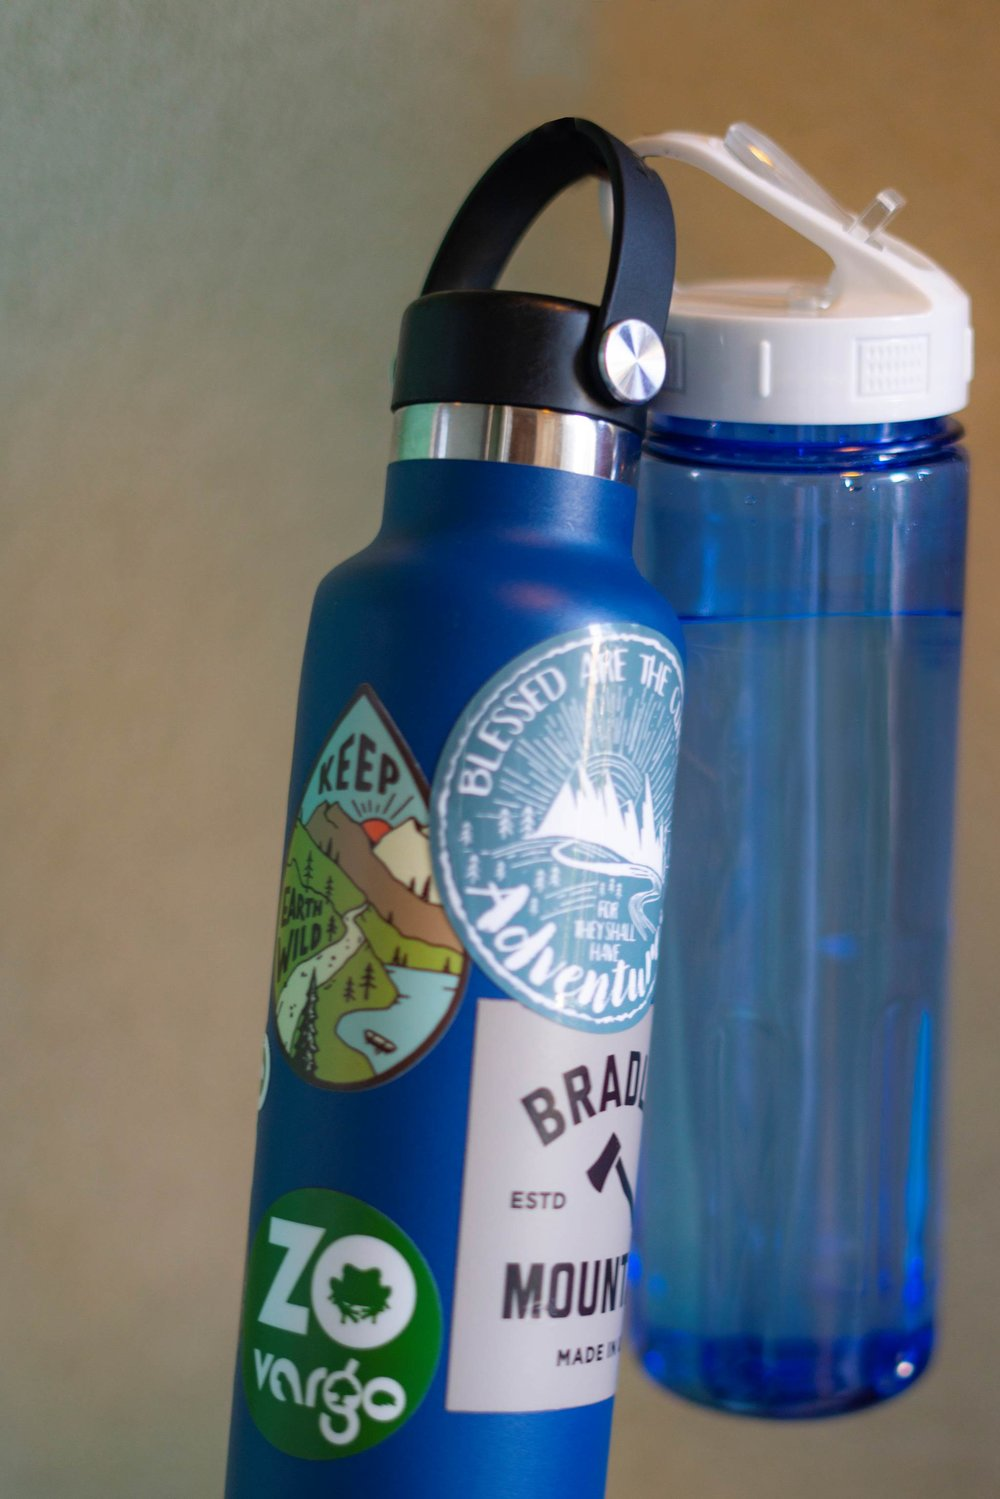 Using your own re-usable water bottle lets you bring along your own custom creation! Show the organizations you support and show off your personality ---and SAVE THE PLANET.